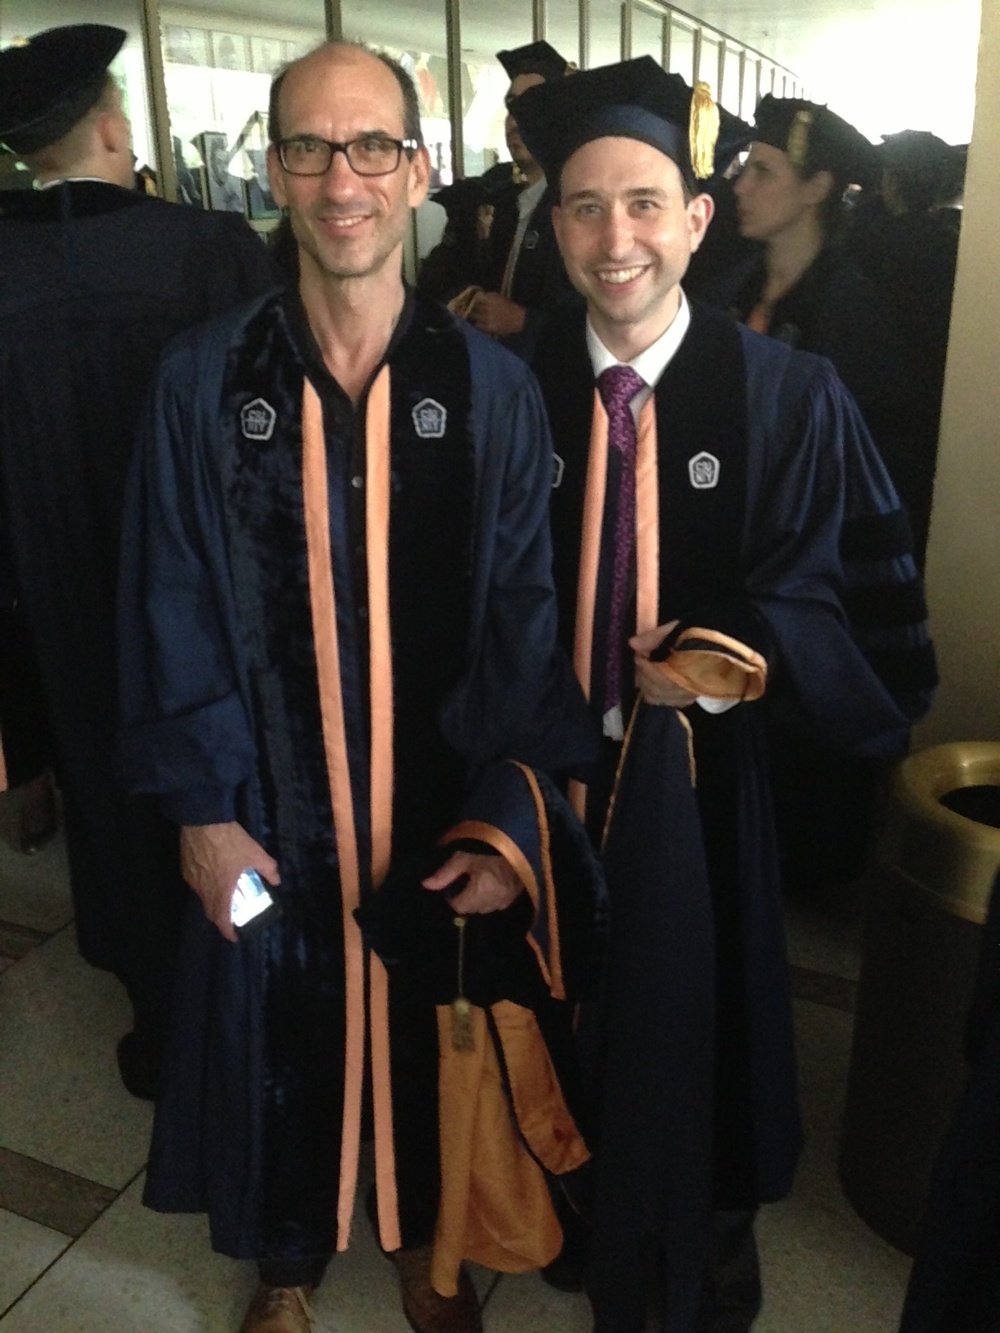 With Jason Schneiderman at our graduation from the Graduate Center, May 2013, Lincoln Center.